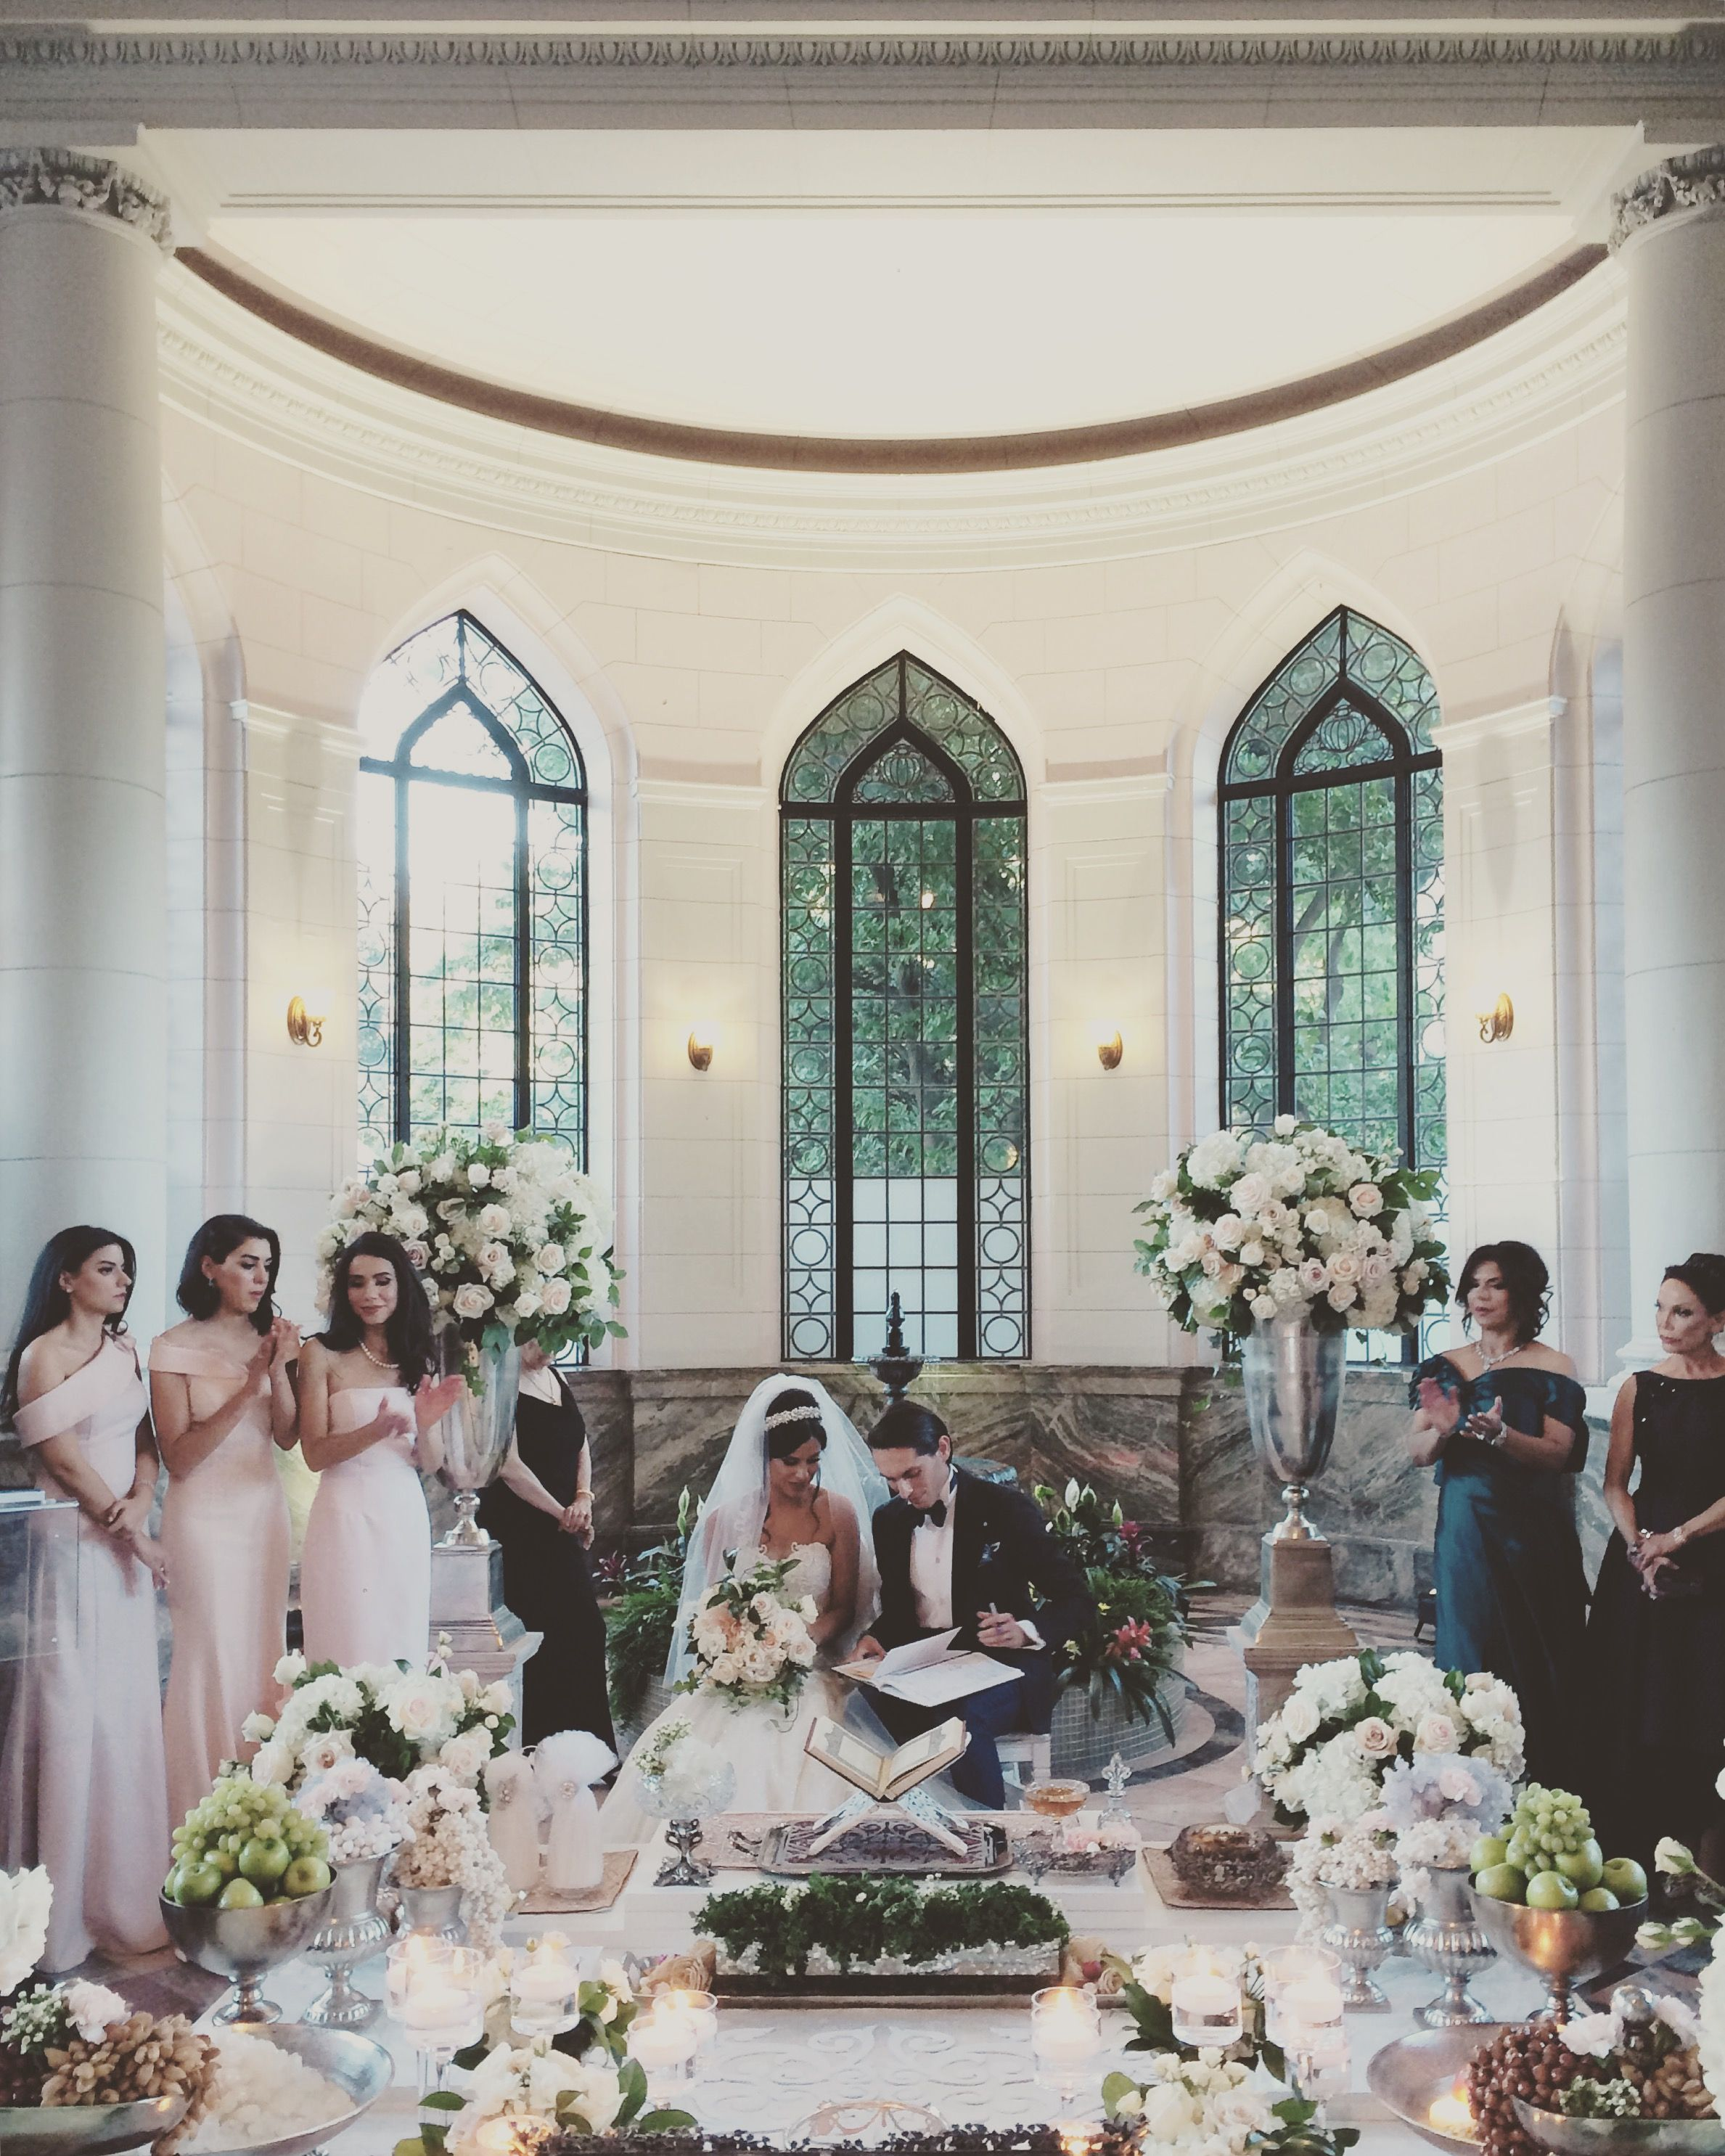 Bits And Blooms Inc. Sofreh Aghd Persian Wedding